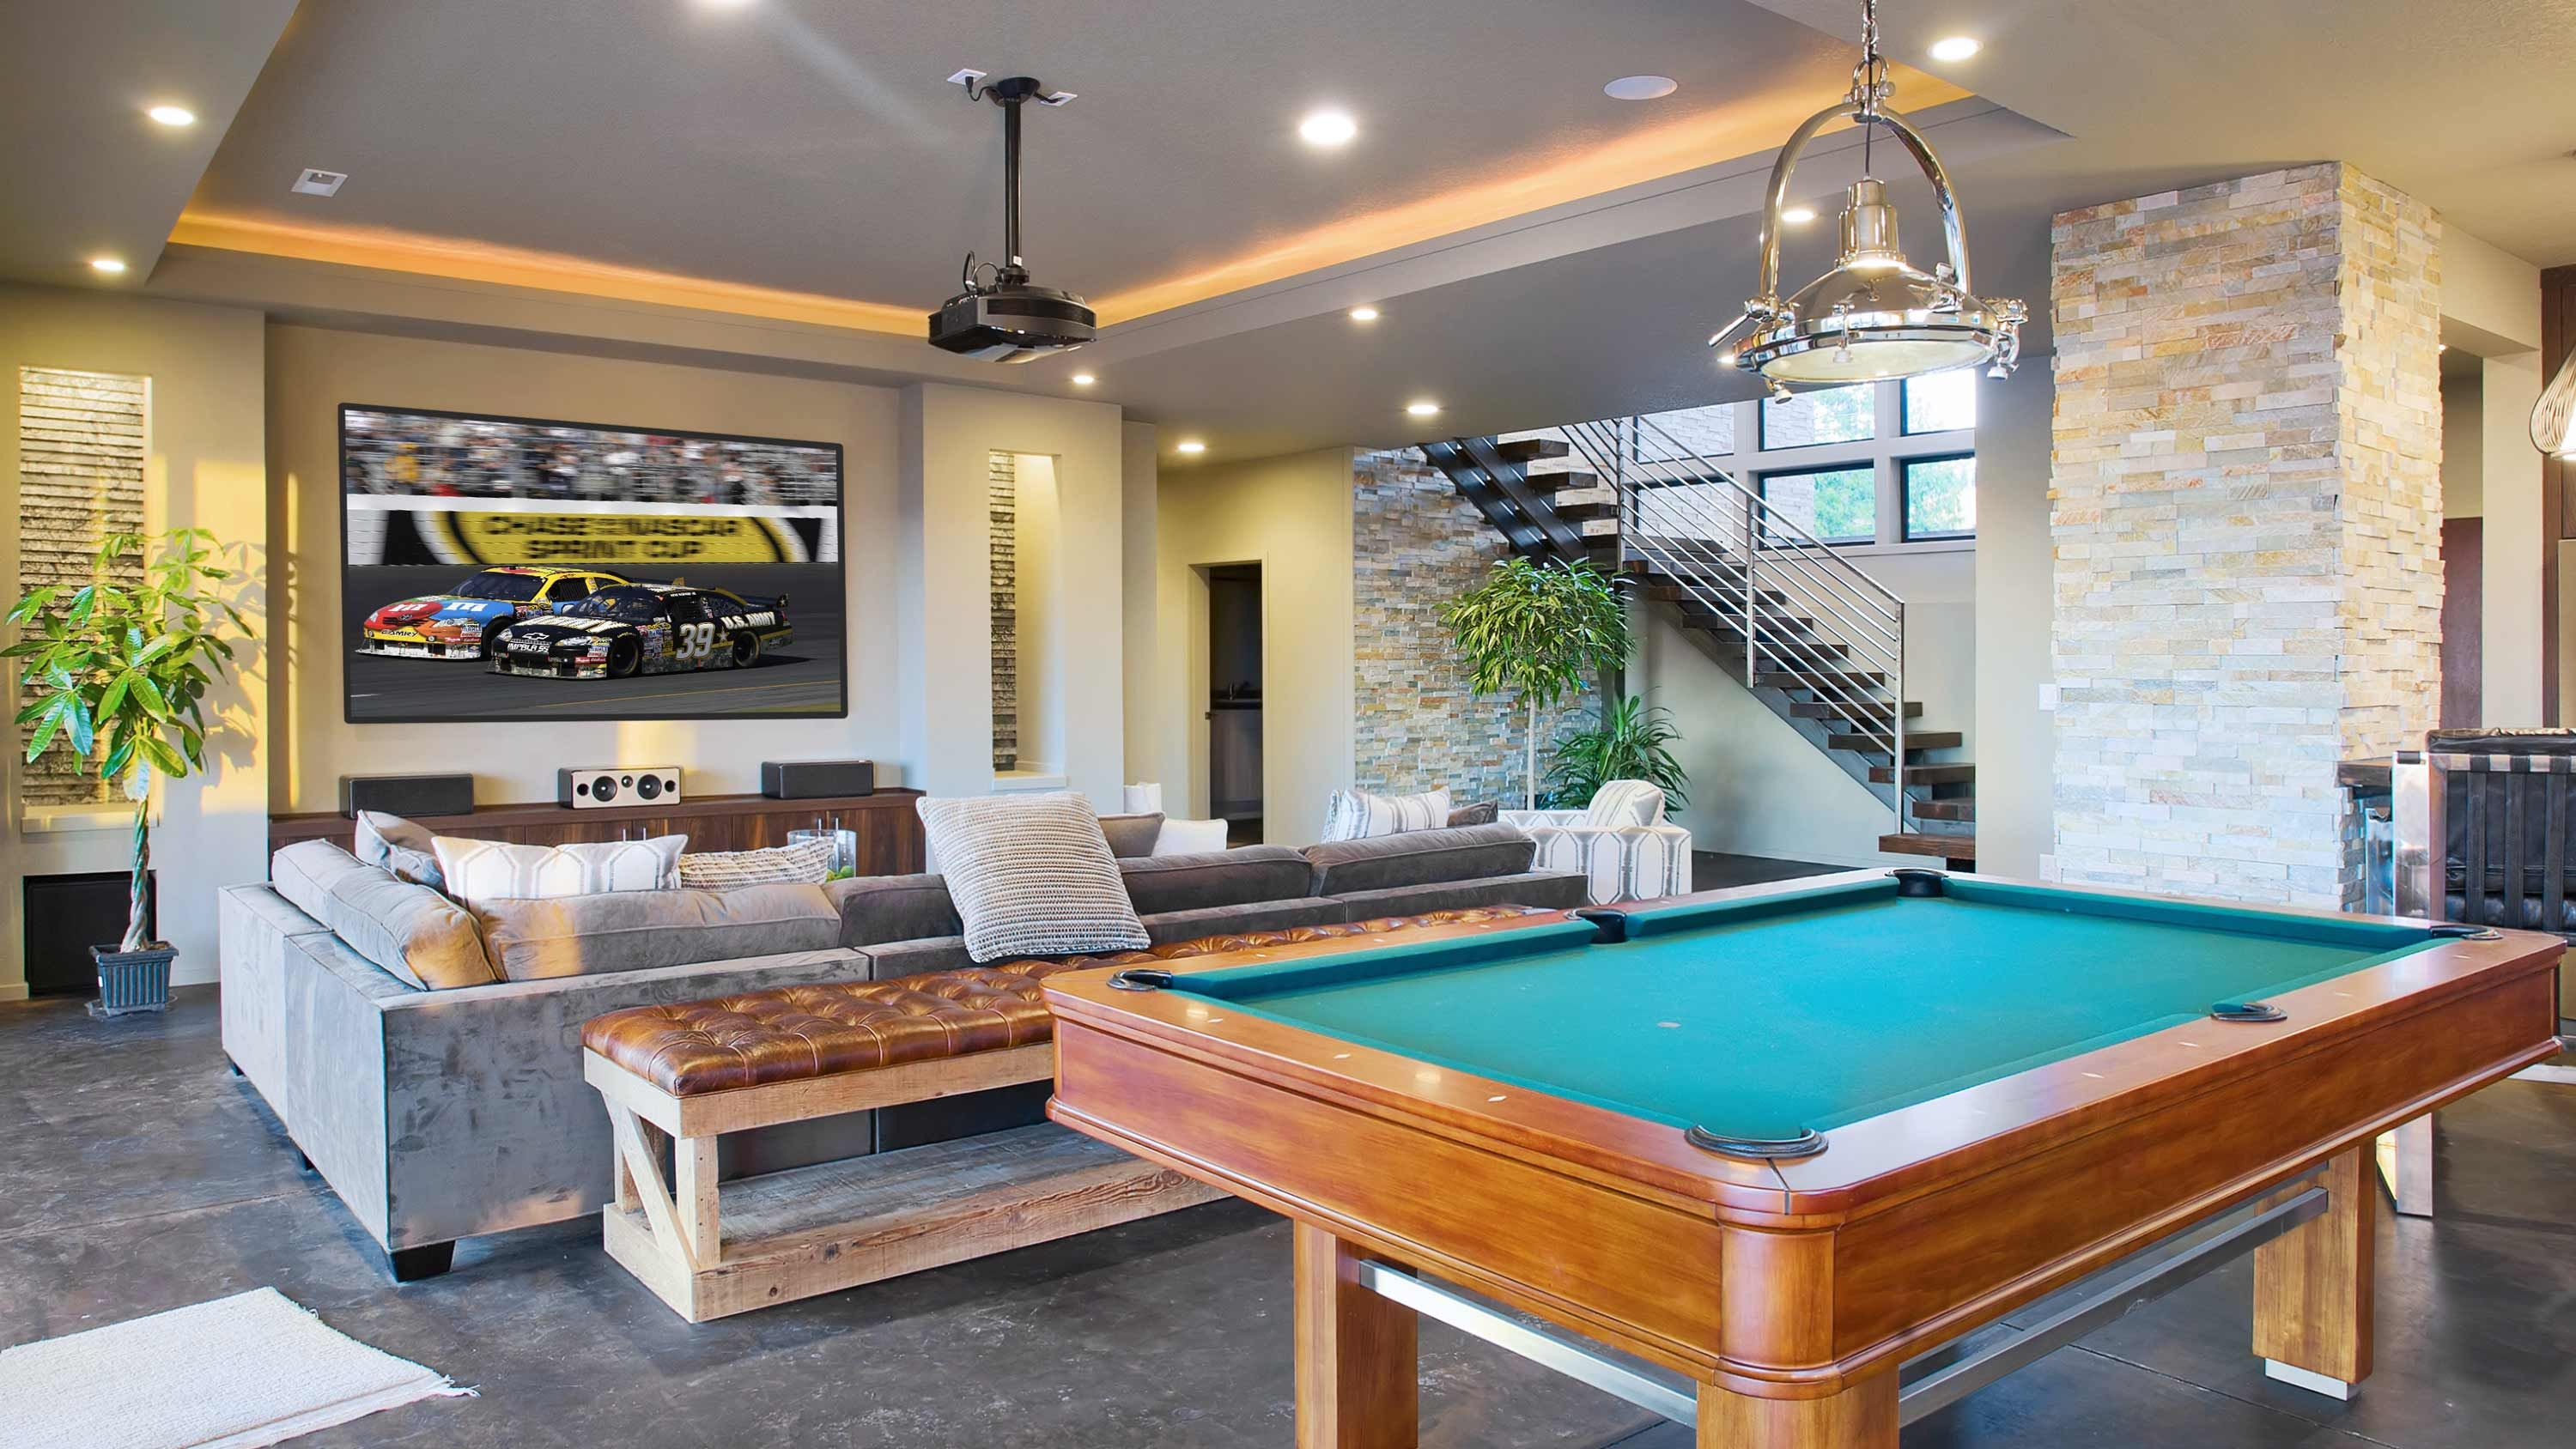 Control4 Dealer Austin, TX, home control, indoor automation, home automation, bar and game room, smart home control4